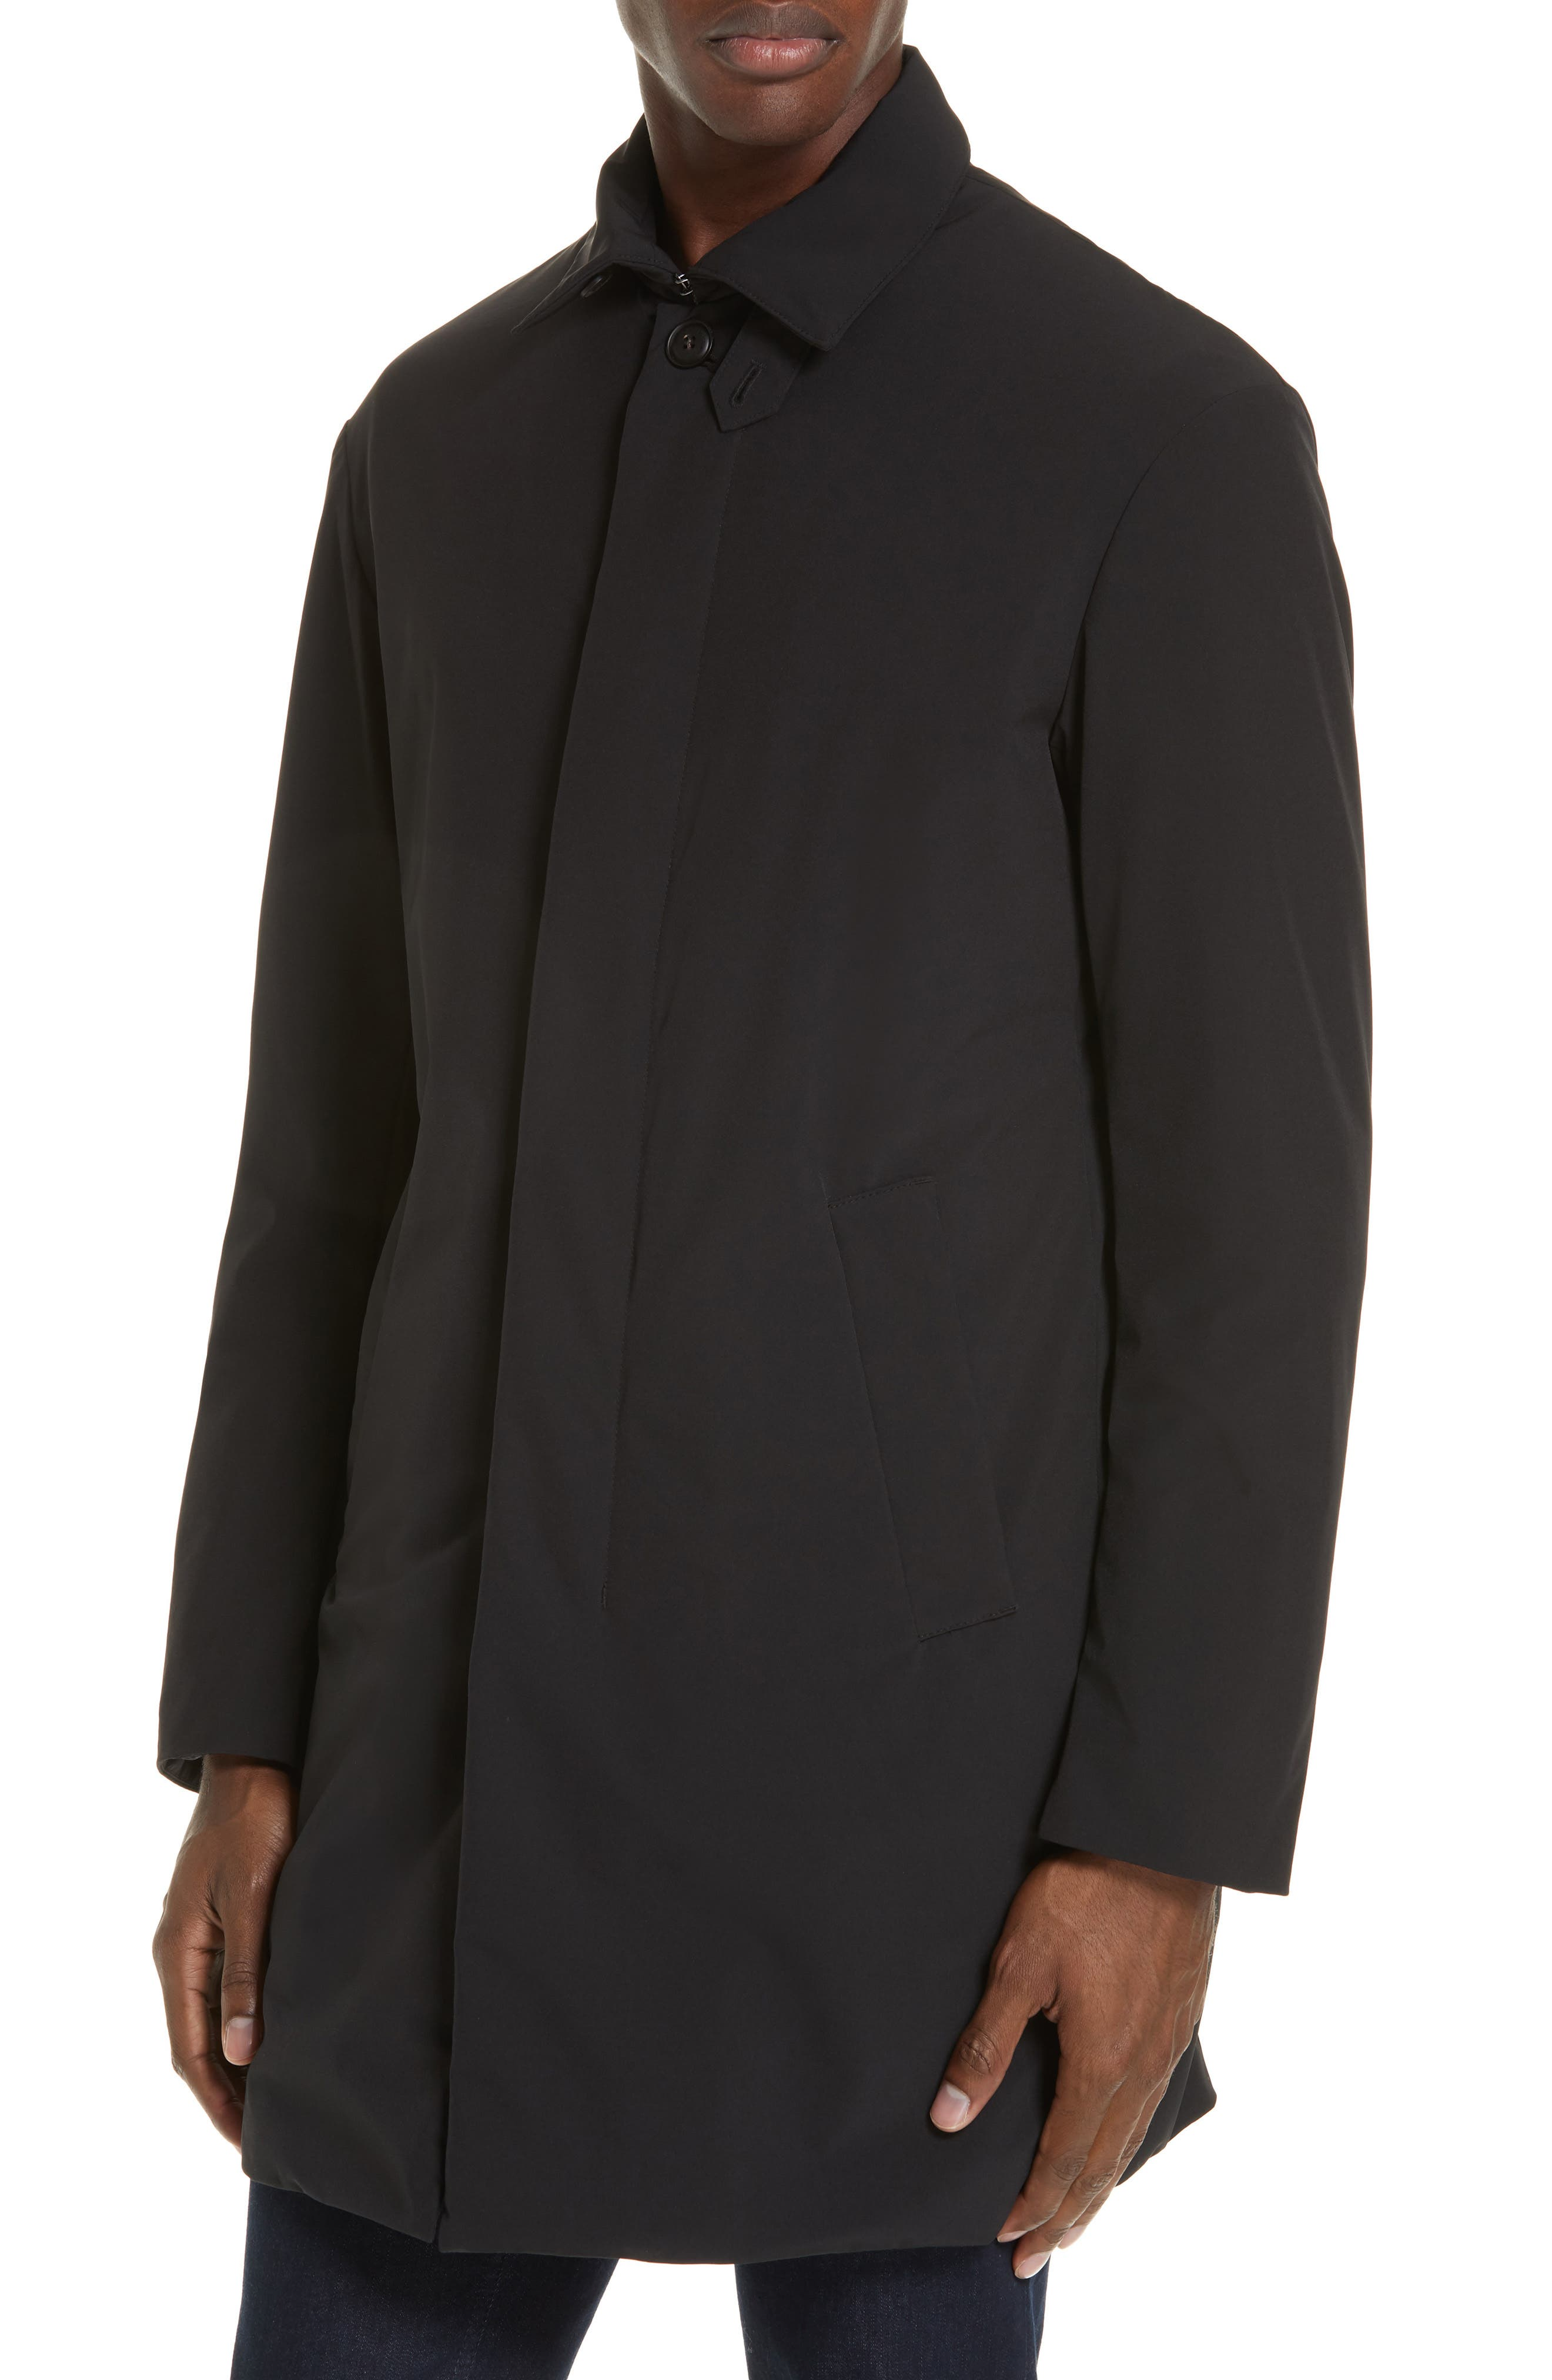 EMPORIO ARMANI,                             Trim Fit Stretch Topcoat,                             Alternate thumbnail 4, color,                             001